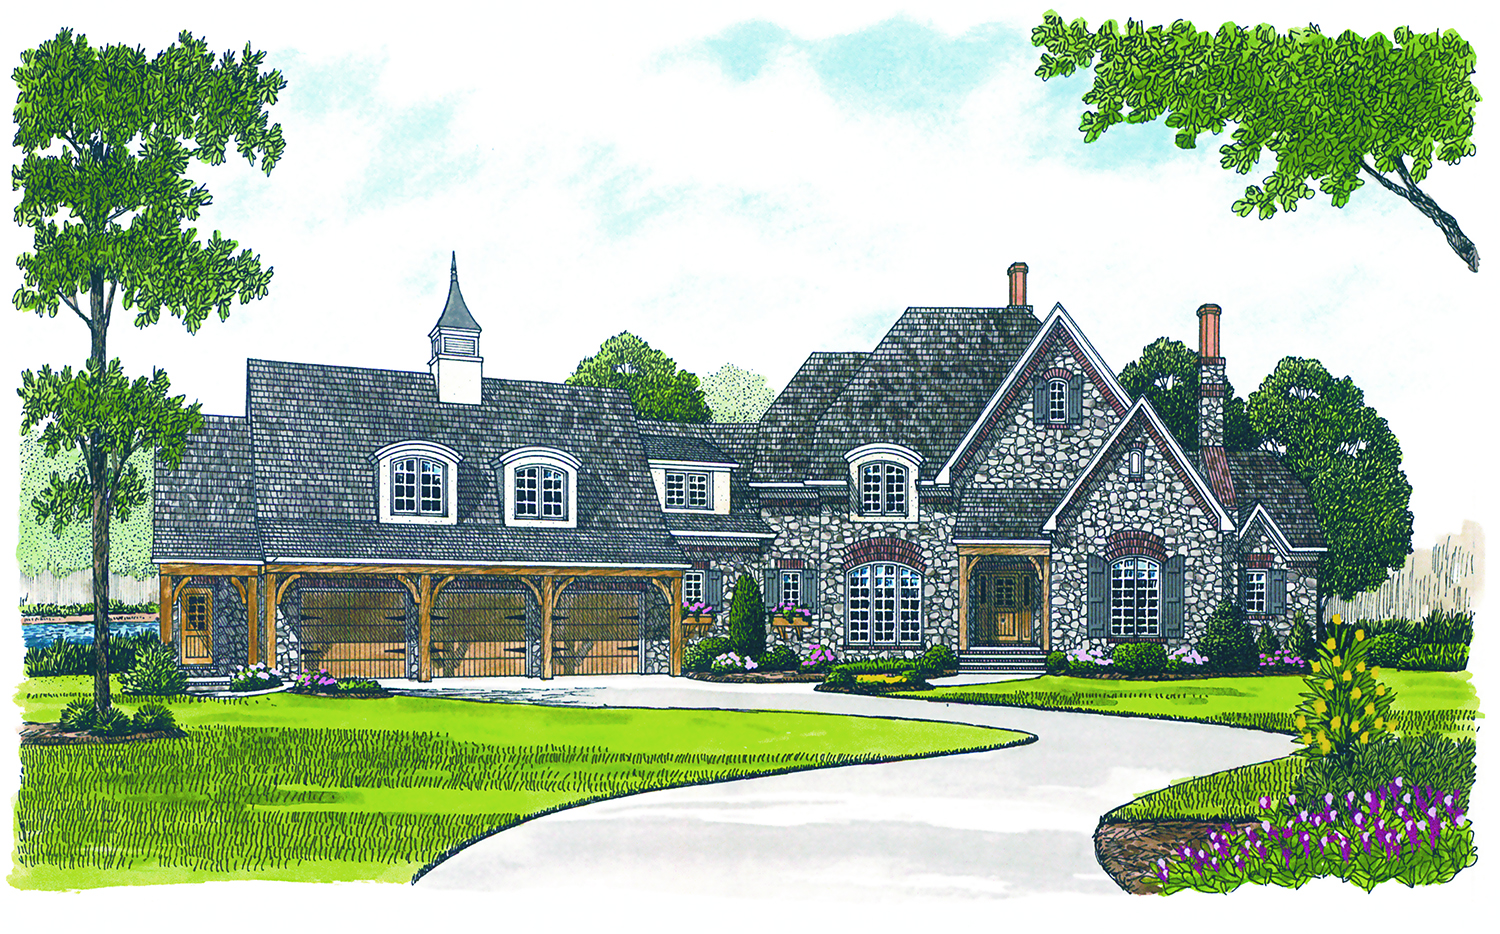 3660 sq ft french country manor plan 180 1021 3 bedrm home for French manor house